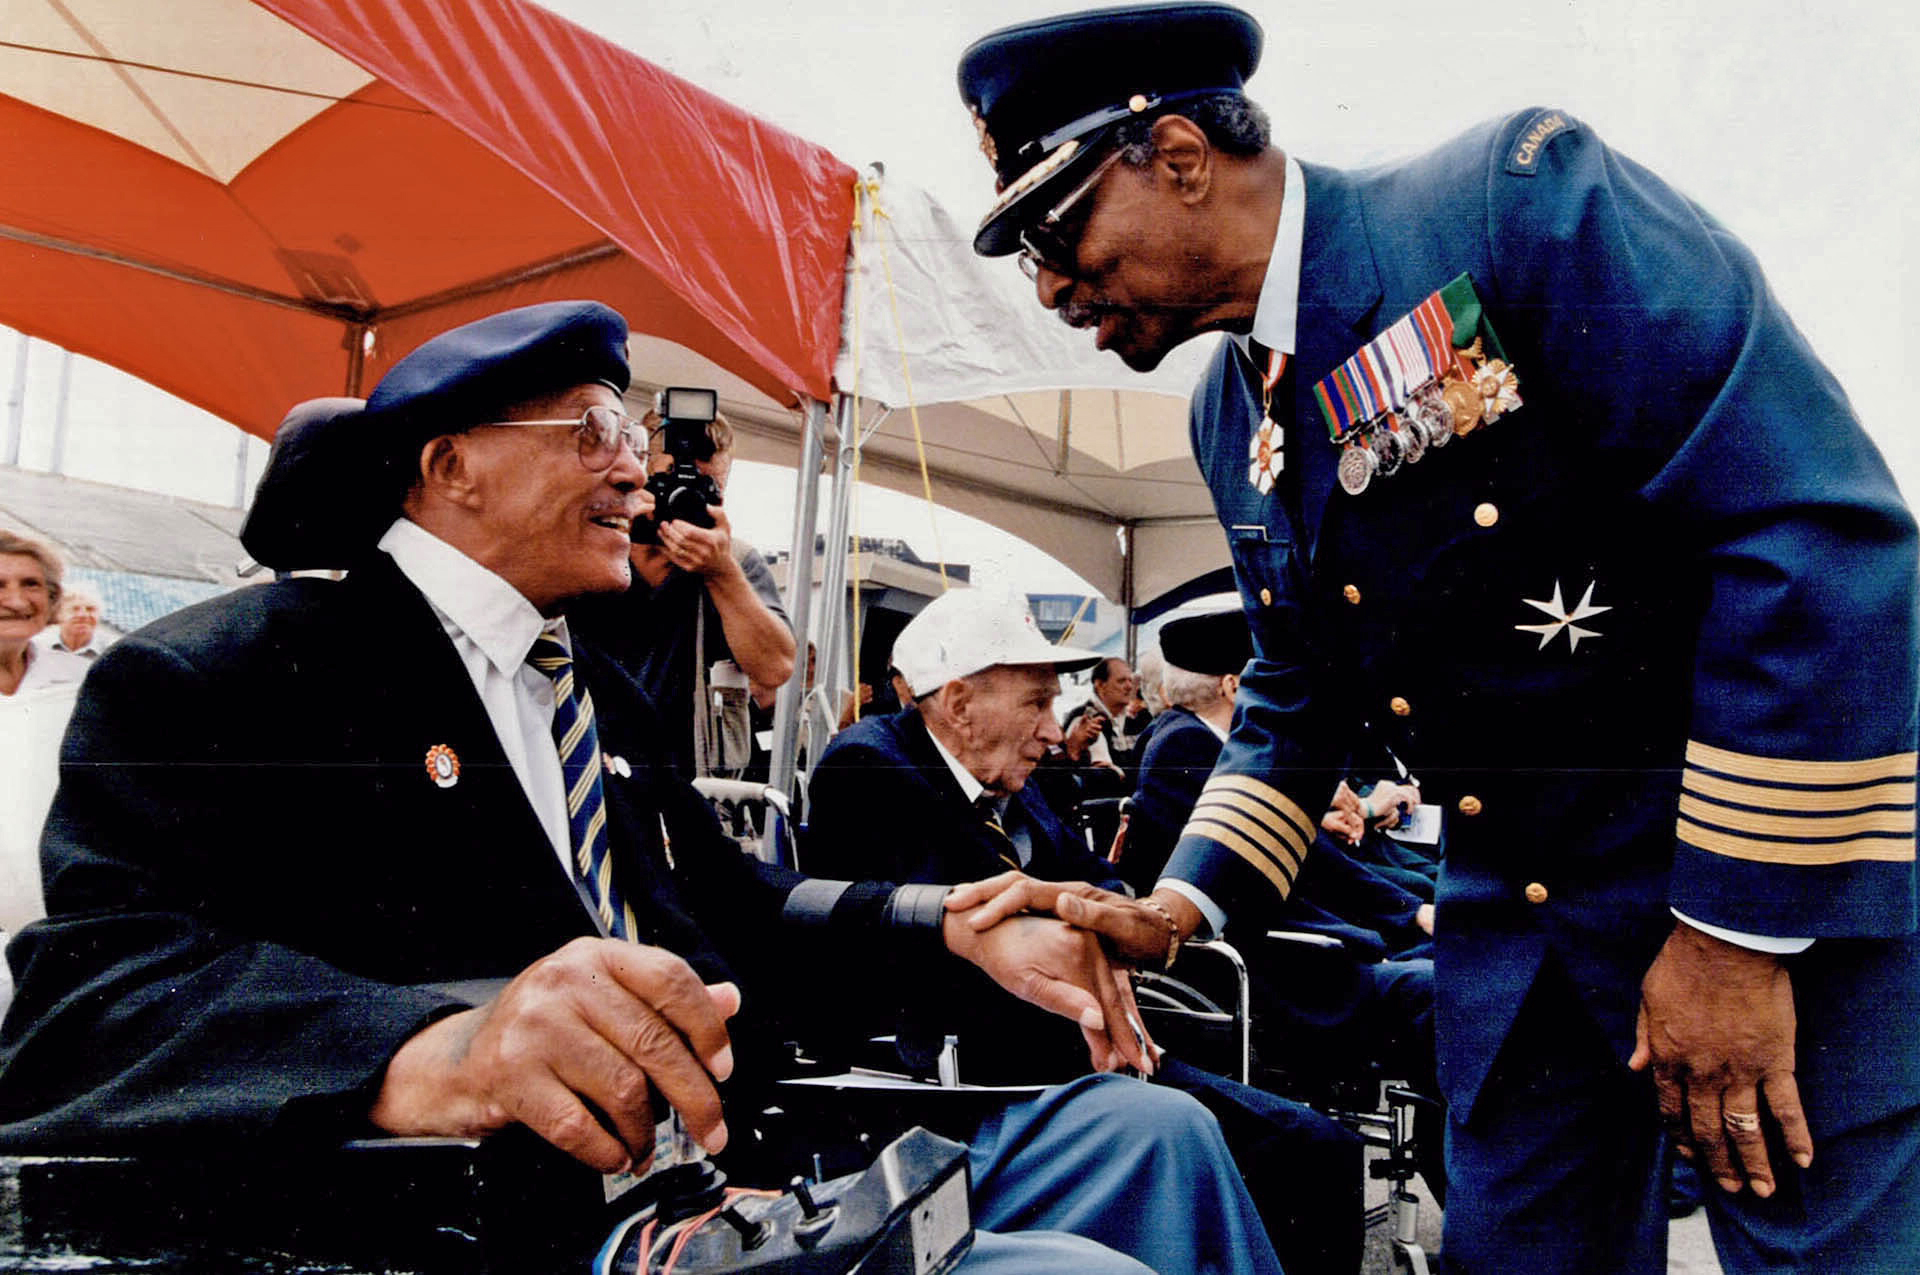 Lieutenant Governor Lincoln Alexander, wearing the uniform of an honorary colonel of the Air Force, speaks with a veteran. PHOTO: Toronto Star Archives, tspa_0028978f